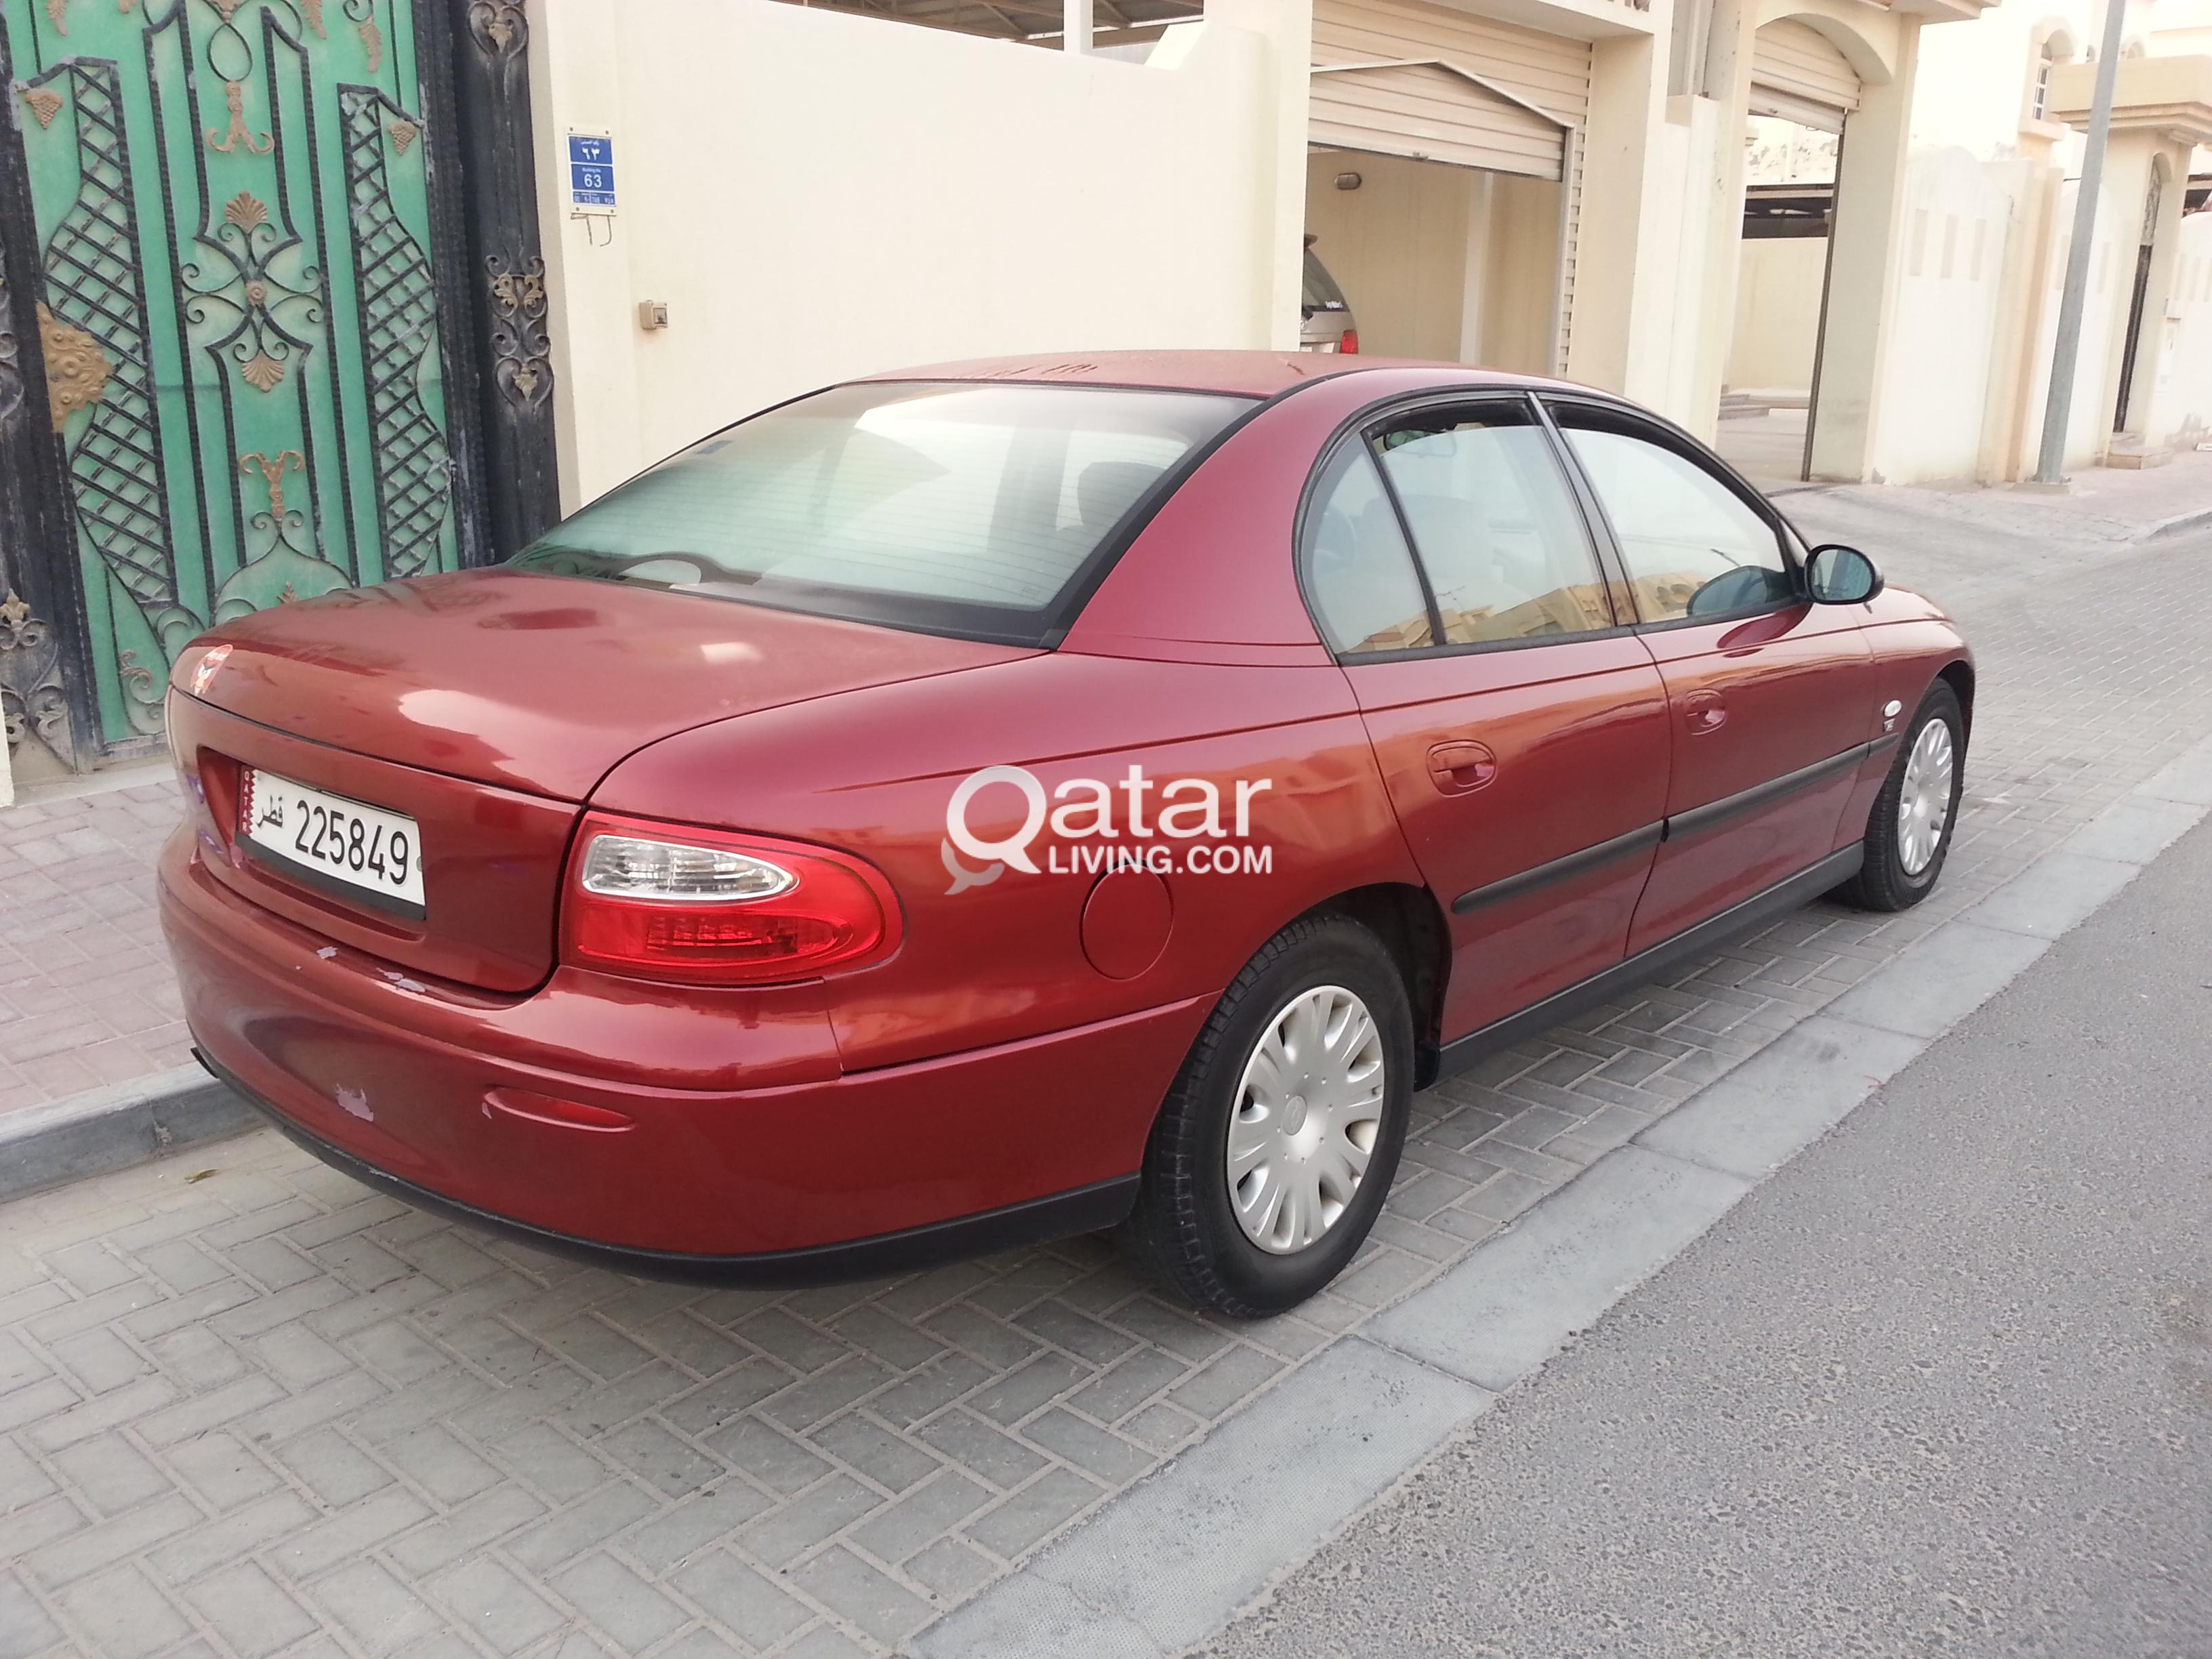 For Sale Chevrolet Lumina 2001 Color Red Maroon Auto Transmission